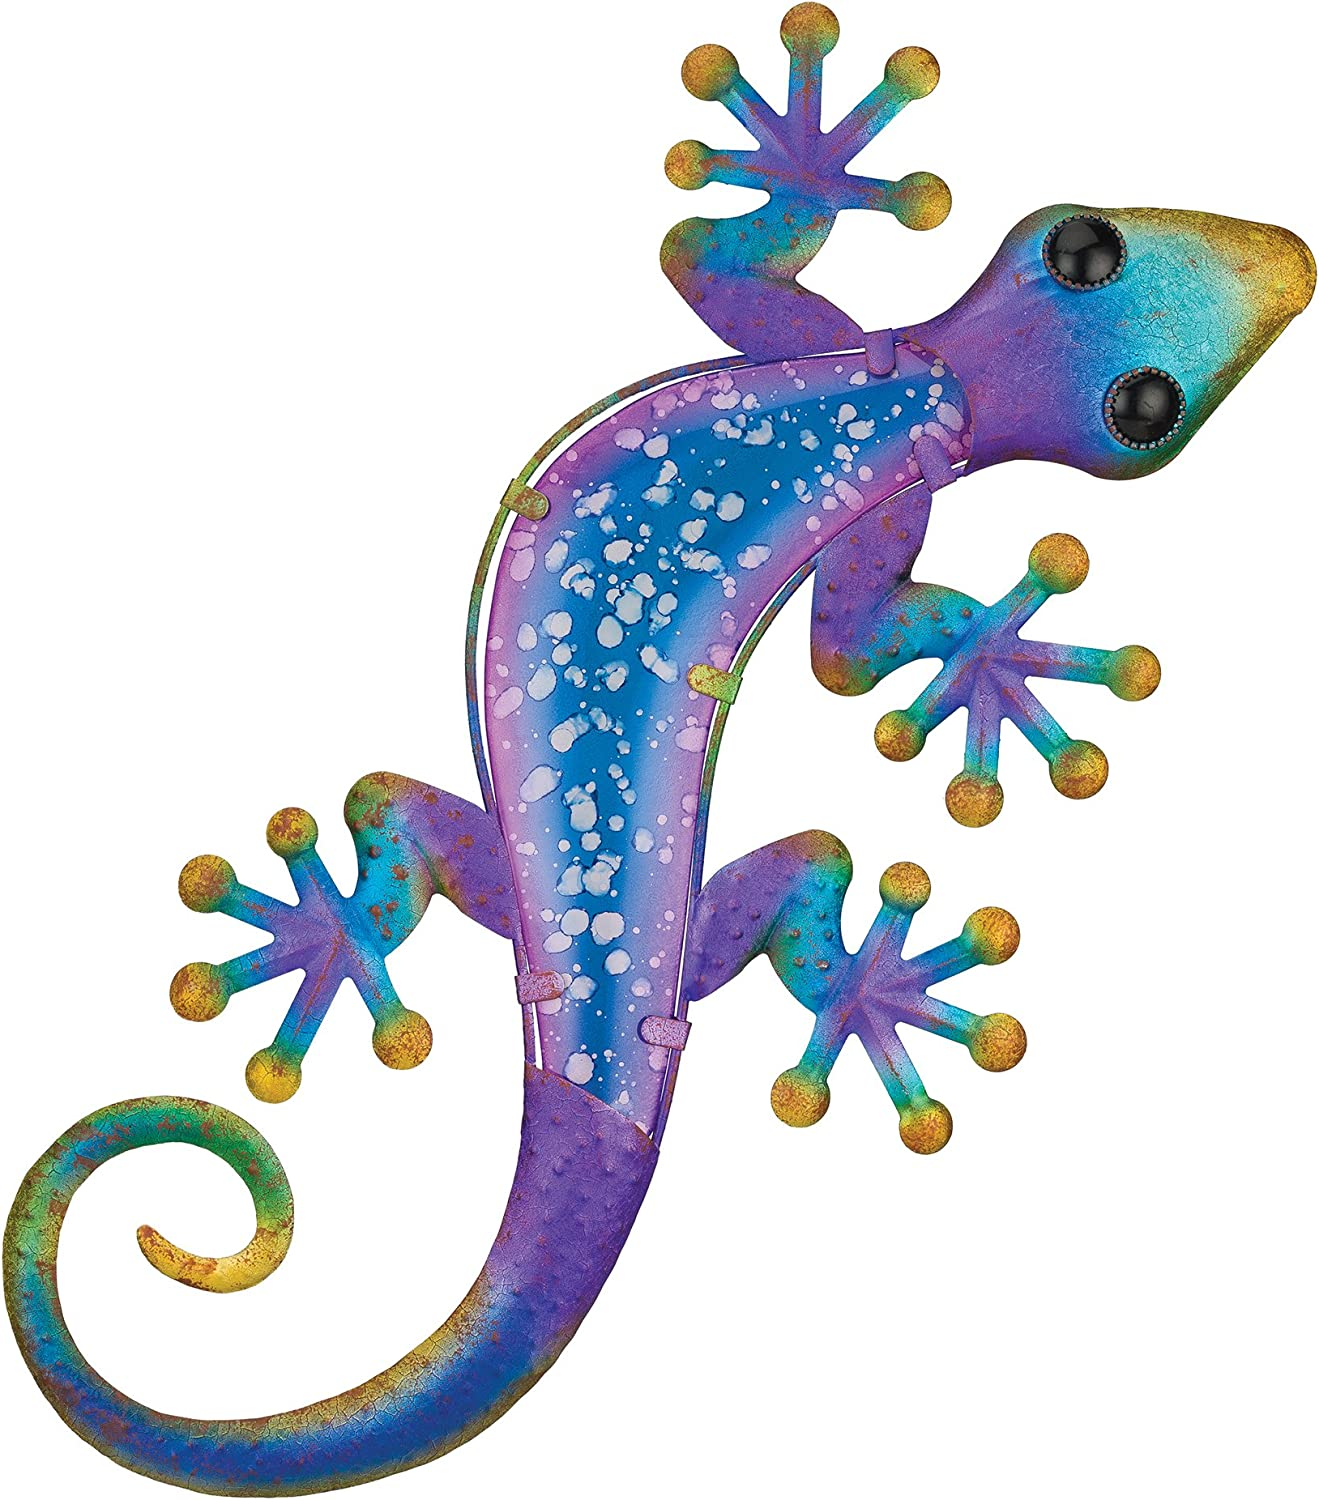 Regal Art & Gift 11349 Watercolor Gecko Wall Decor, 24""